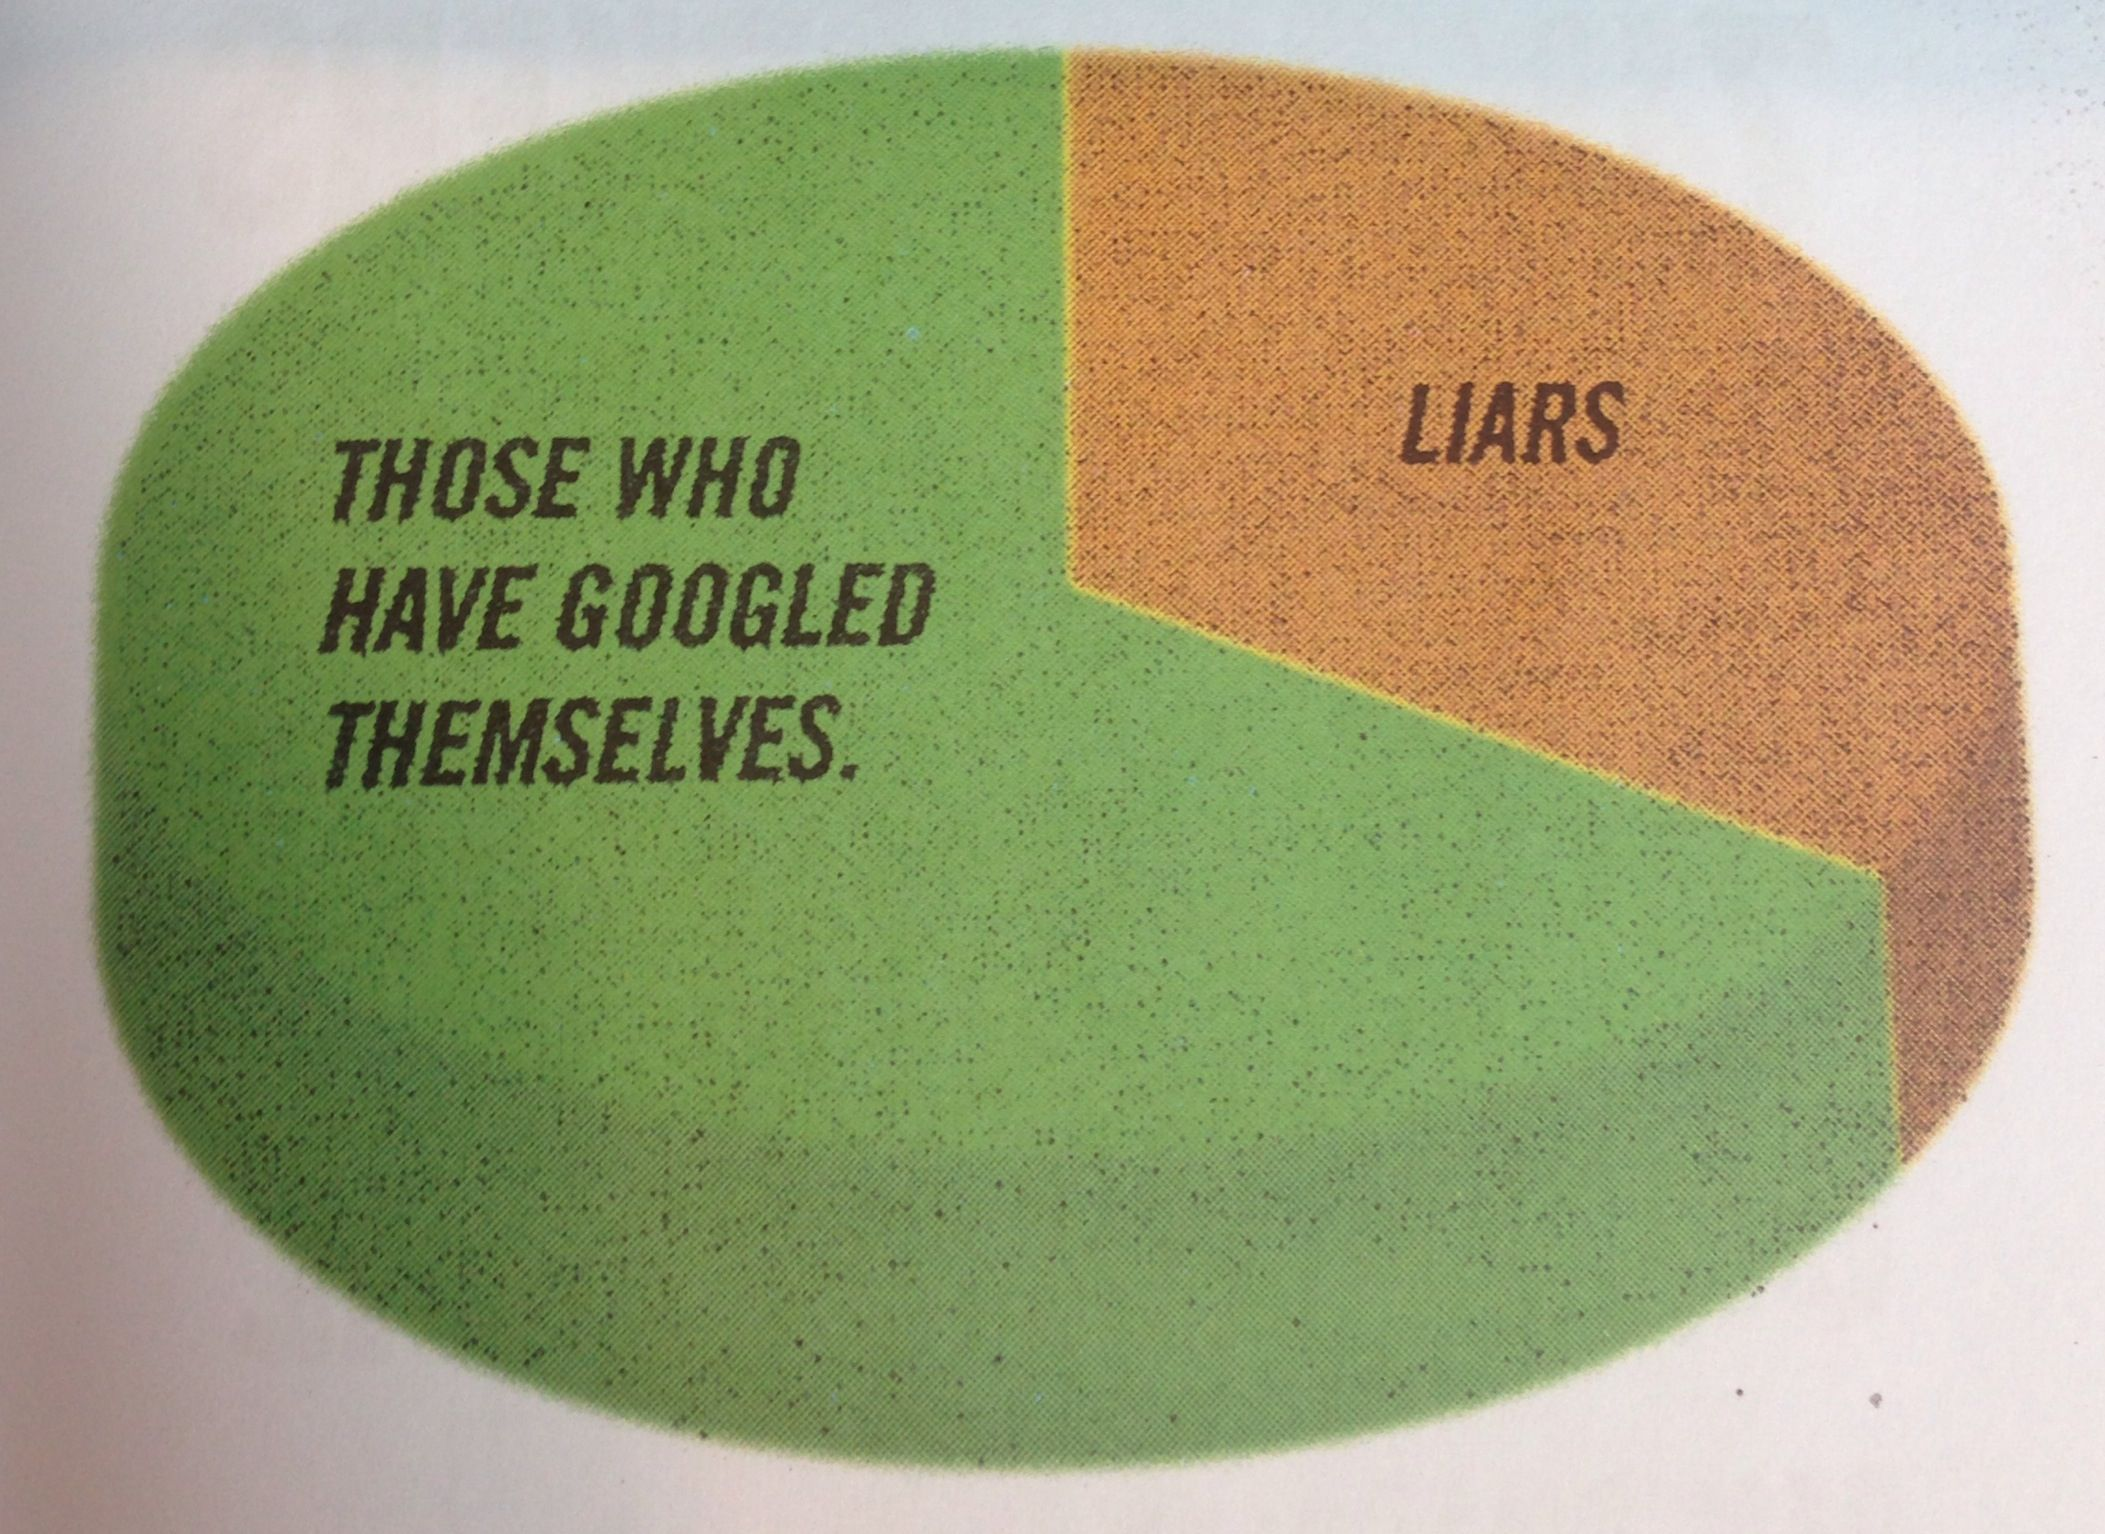 """The desire to Googling oneself—19% of workers say """"Googling themselves"""" sounds like some form of """"digital masturbation.""""   From: Josh Denberg & Paul Hirsch """"Stop Tweeting Boring Sh*t: The New Rules of Work""""  #Google #pie #statistics #humor"""